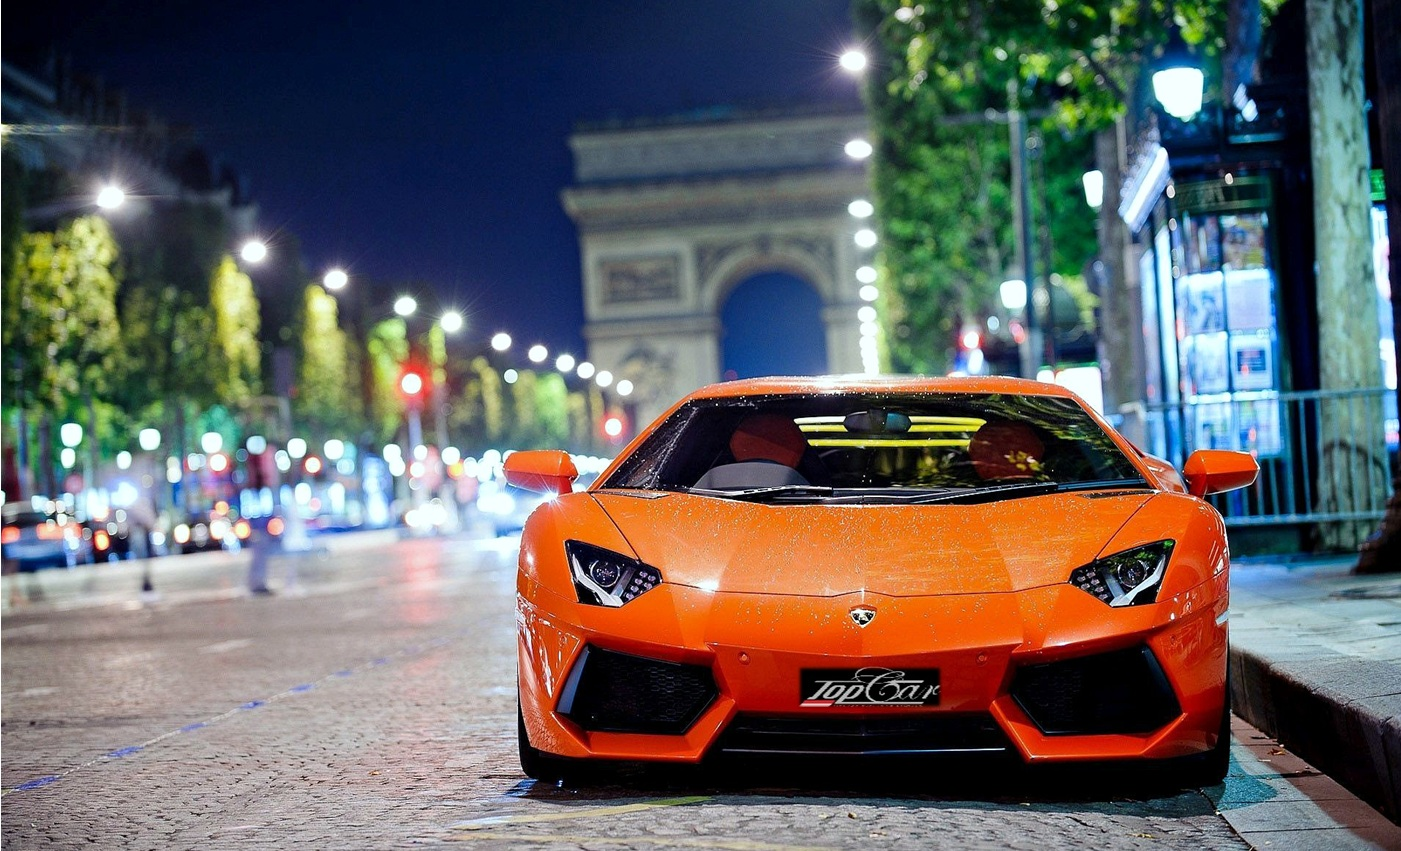 Compare SIXT Car rental in New York: Jfk International Airport, USA with more than car rental companies in USA. You can rent luxury, sports, economy, classic etc. cars with RentalCars24H. We provide car hire service in countries and 30, locations.